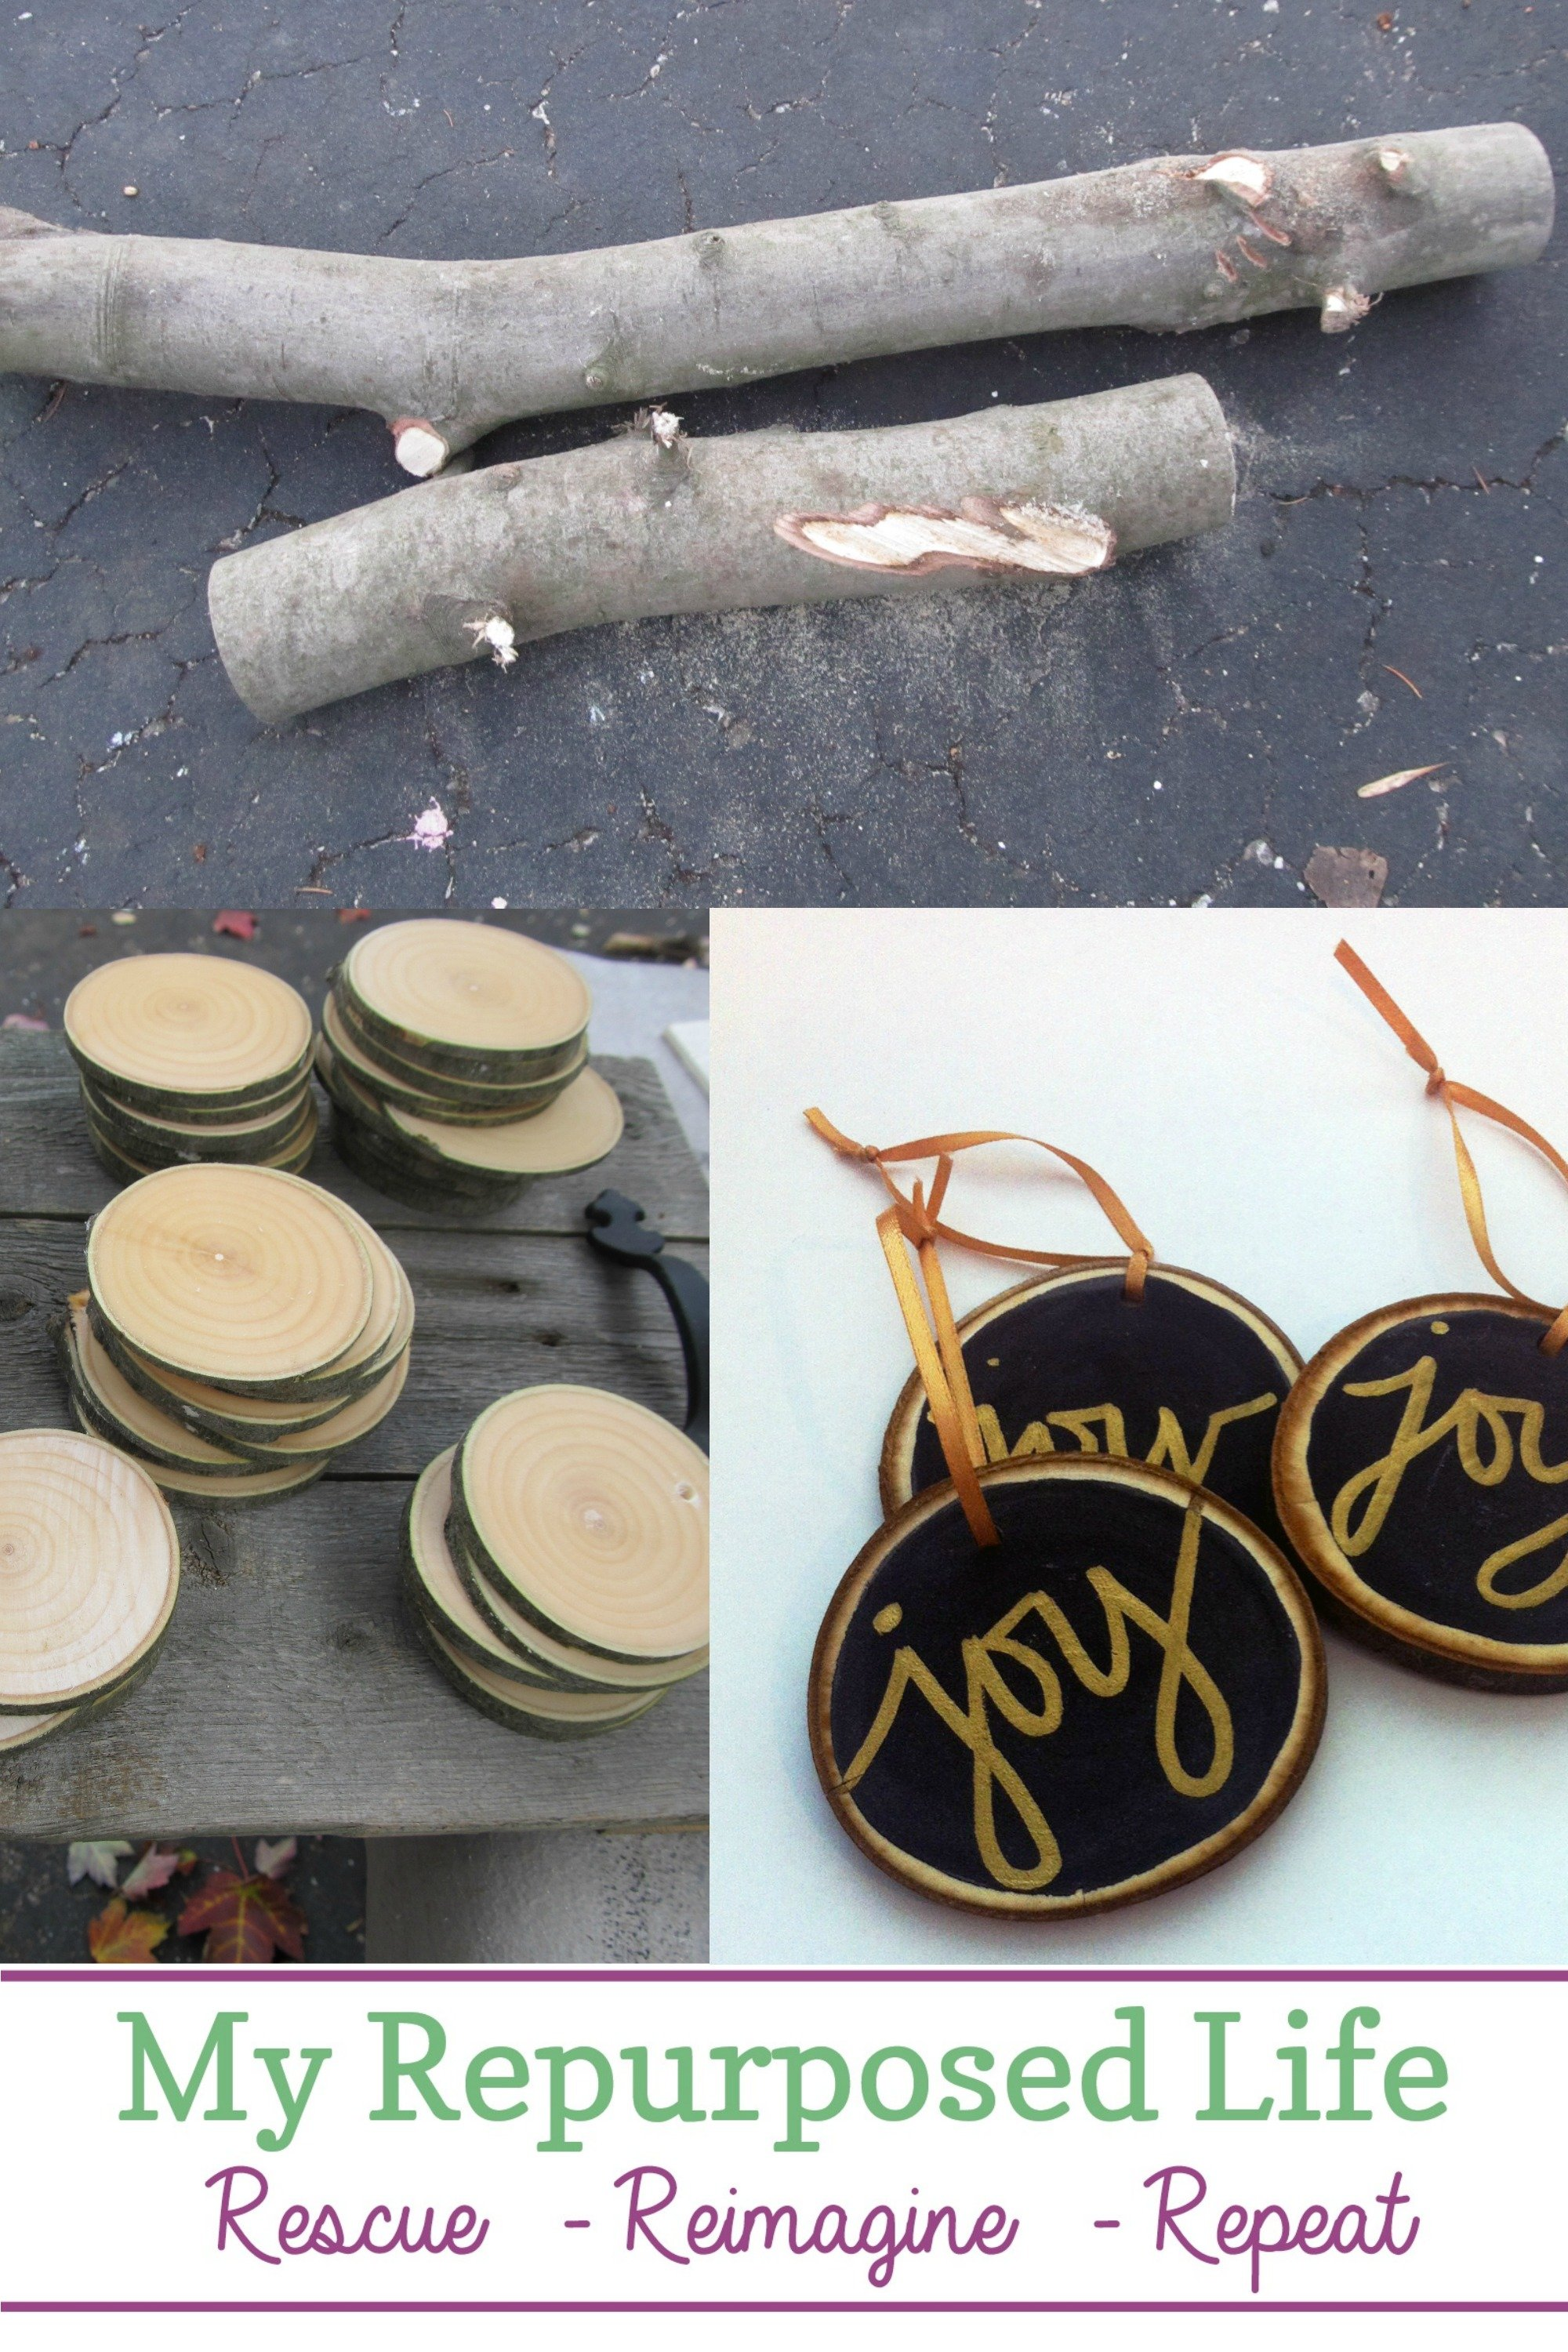 How to make customized wood slice ornaments for your friends or family this Christmas. First, you don't need a chainsaw for this project. If you buy your wood slices online, you don't even need a saw! That's right, all the information you need in one place! #MyRepurposedLife #Christmas #woodslice #ornaments #easy #diy #project via @repurposedlife